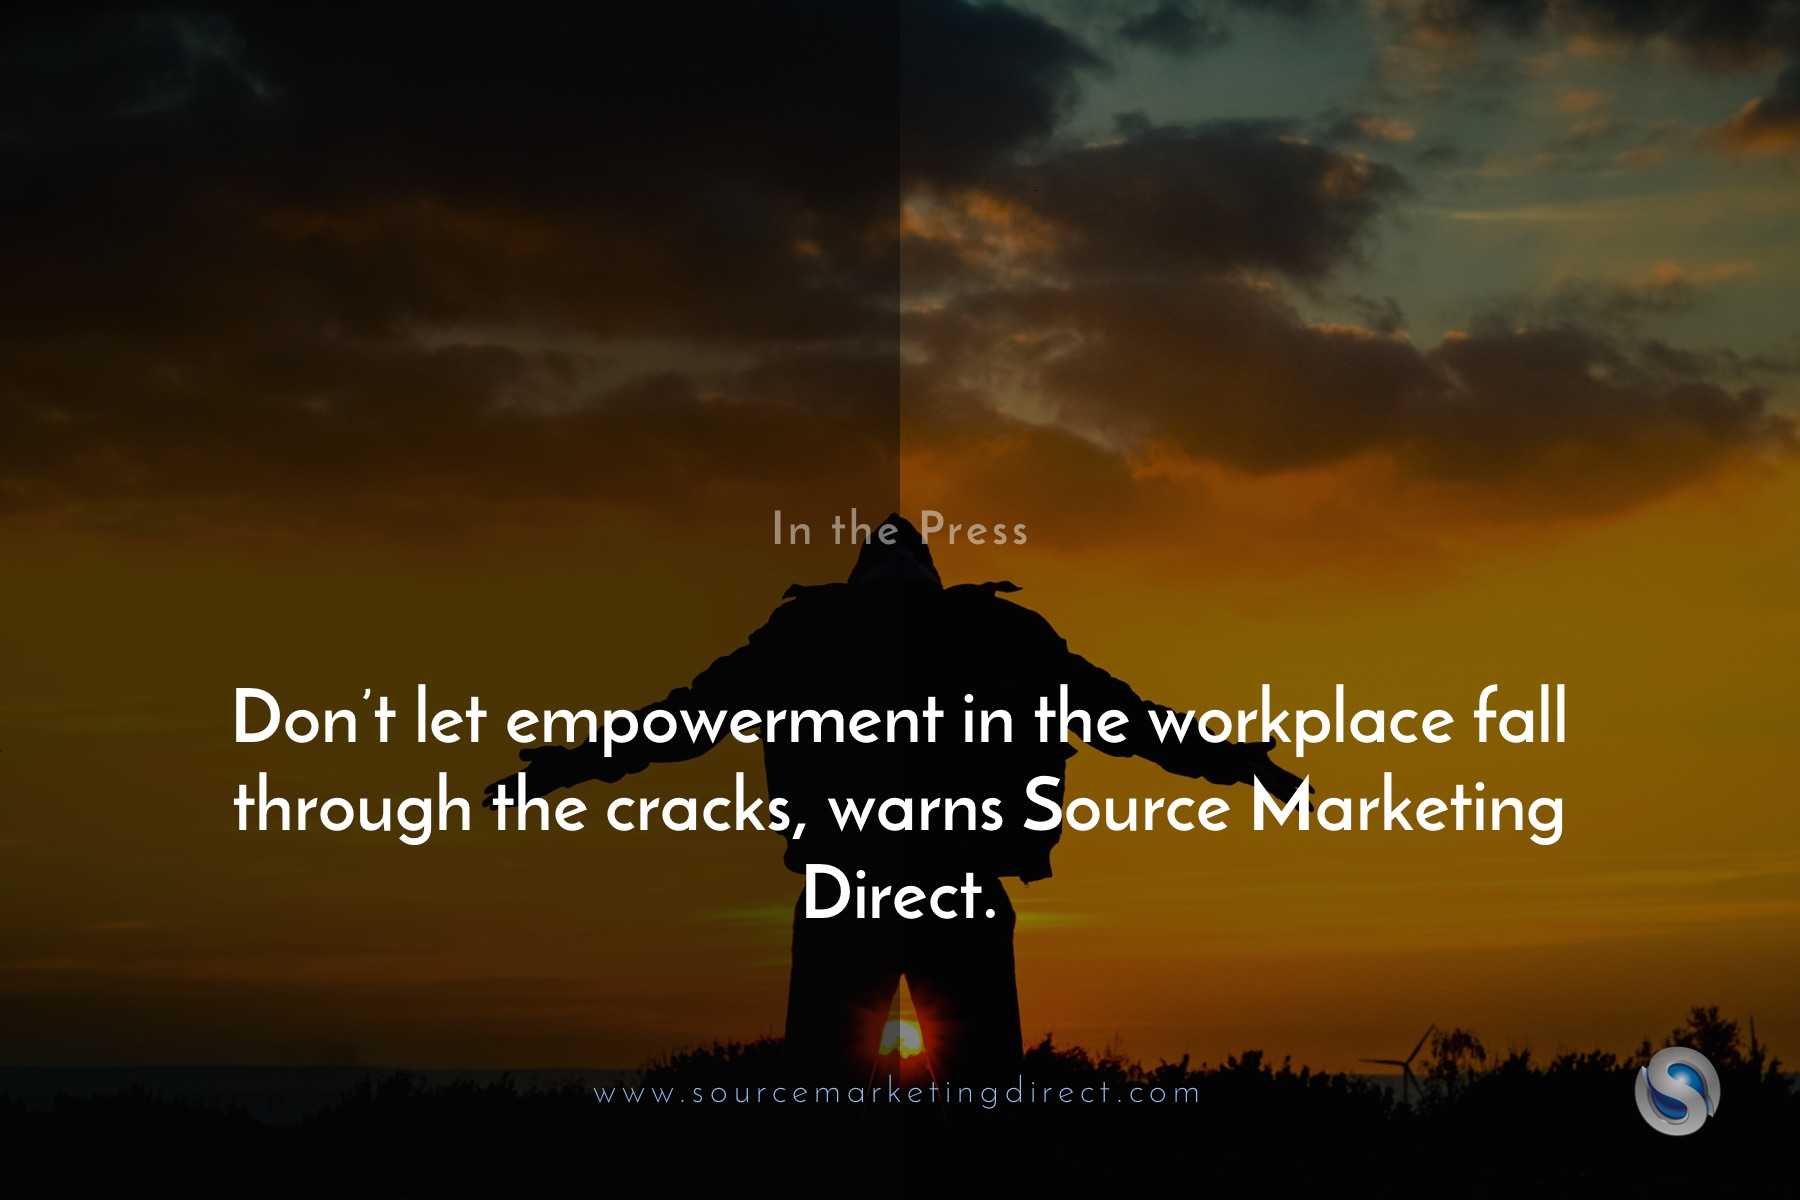 Don't let empowerment in the workplace fall through the cracks, warns Source Marketing Direct